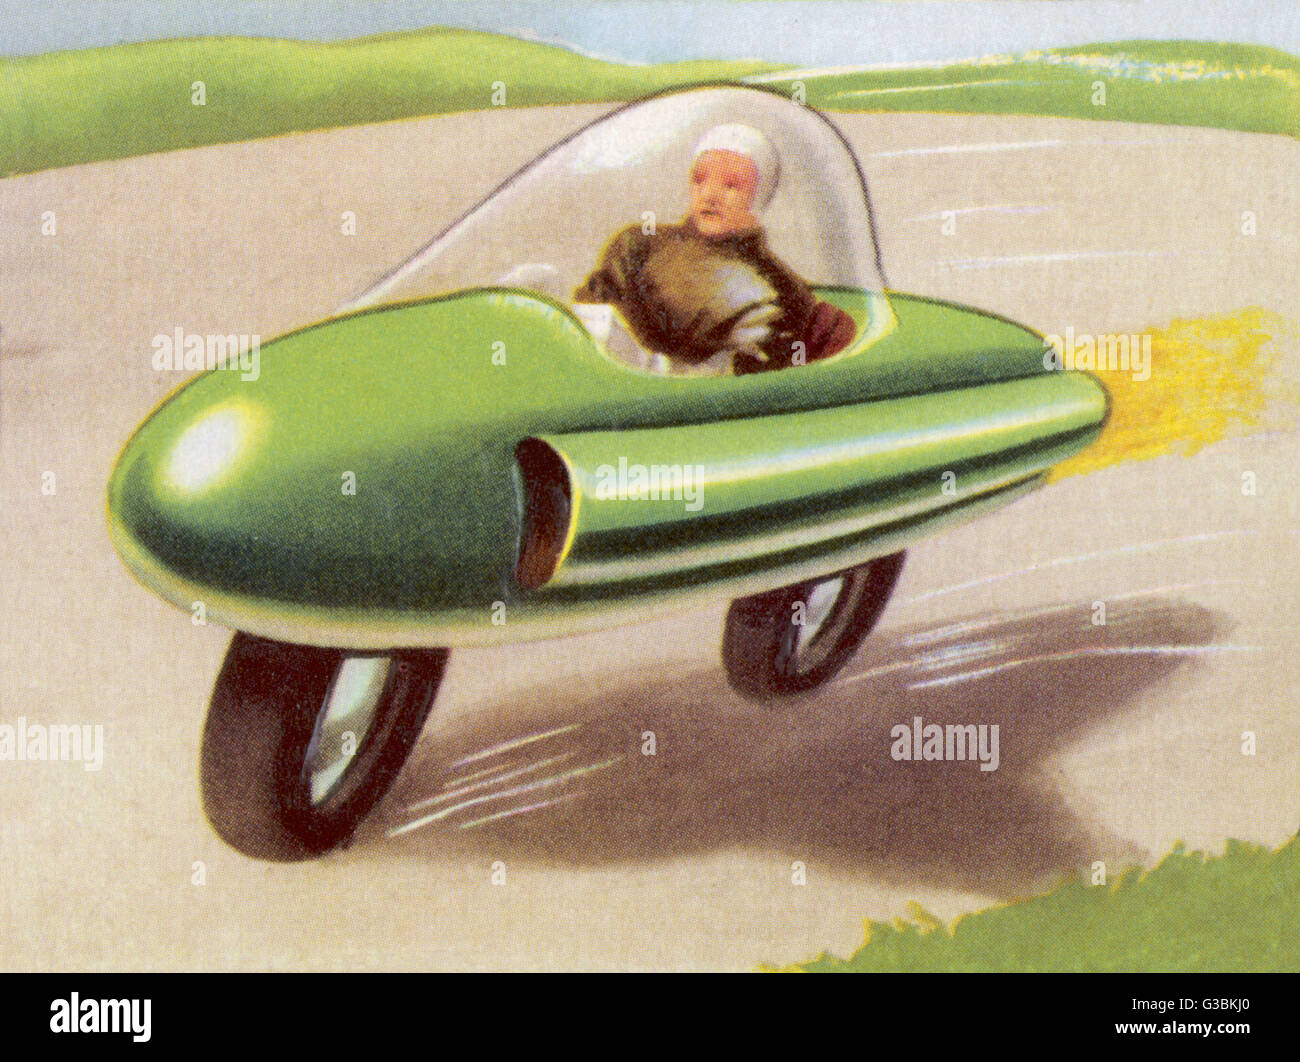 MOTOR CYCLE DRIVEN  BY ATOMIC POWER        Date: circa 1950 - Stock Image